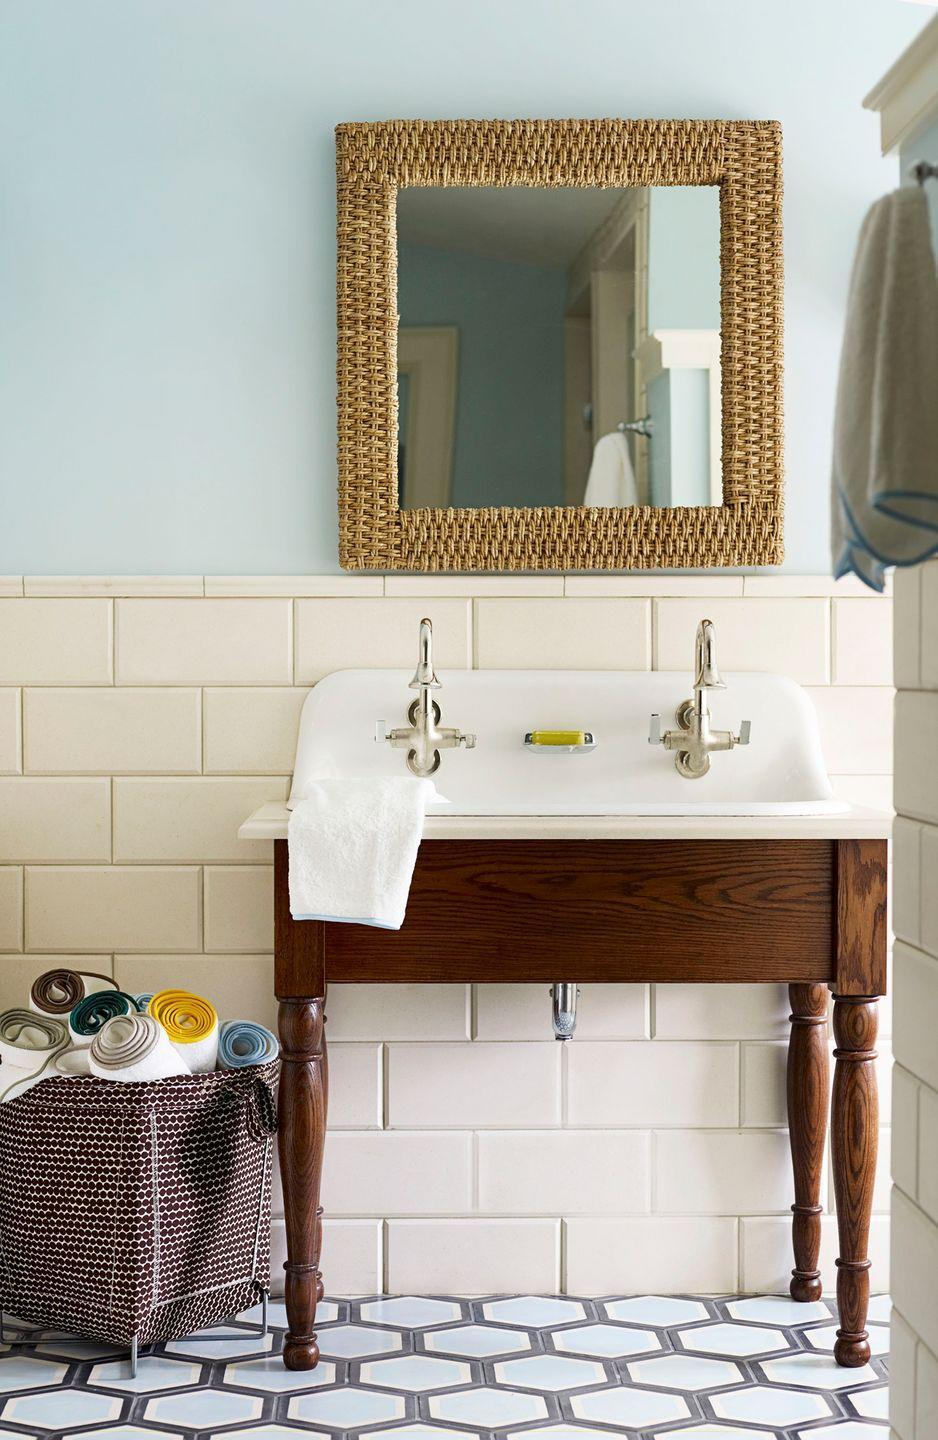 <p>Pastel blue is a no-fail choice to pair with cream and wood tones. Here, large cream tiles ground this bathroom, while soft blue patterned floor tiles add a dose of drama.</p>